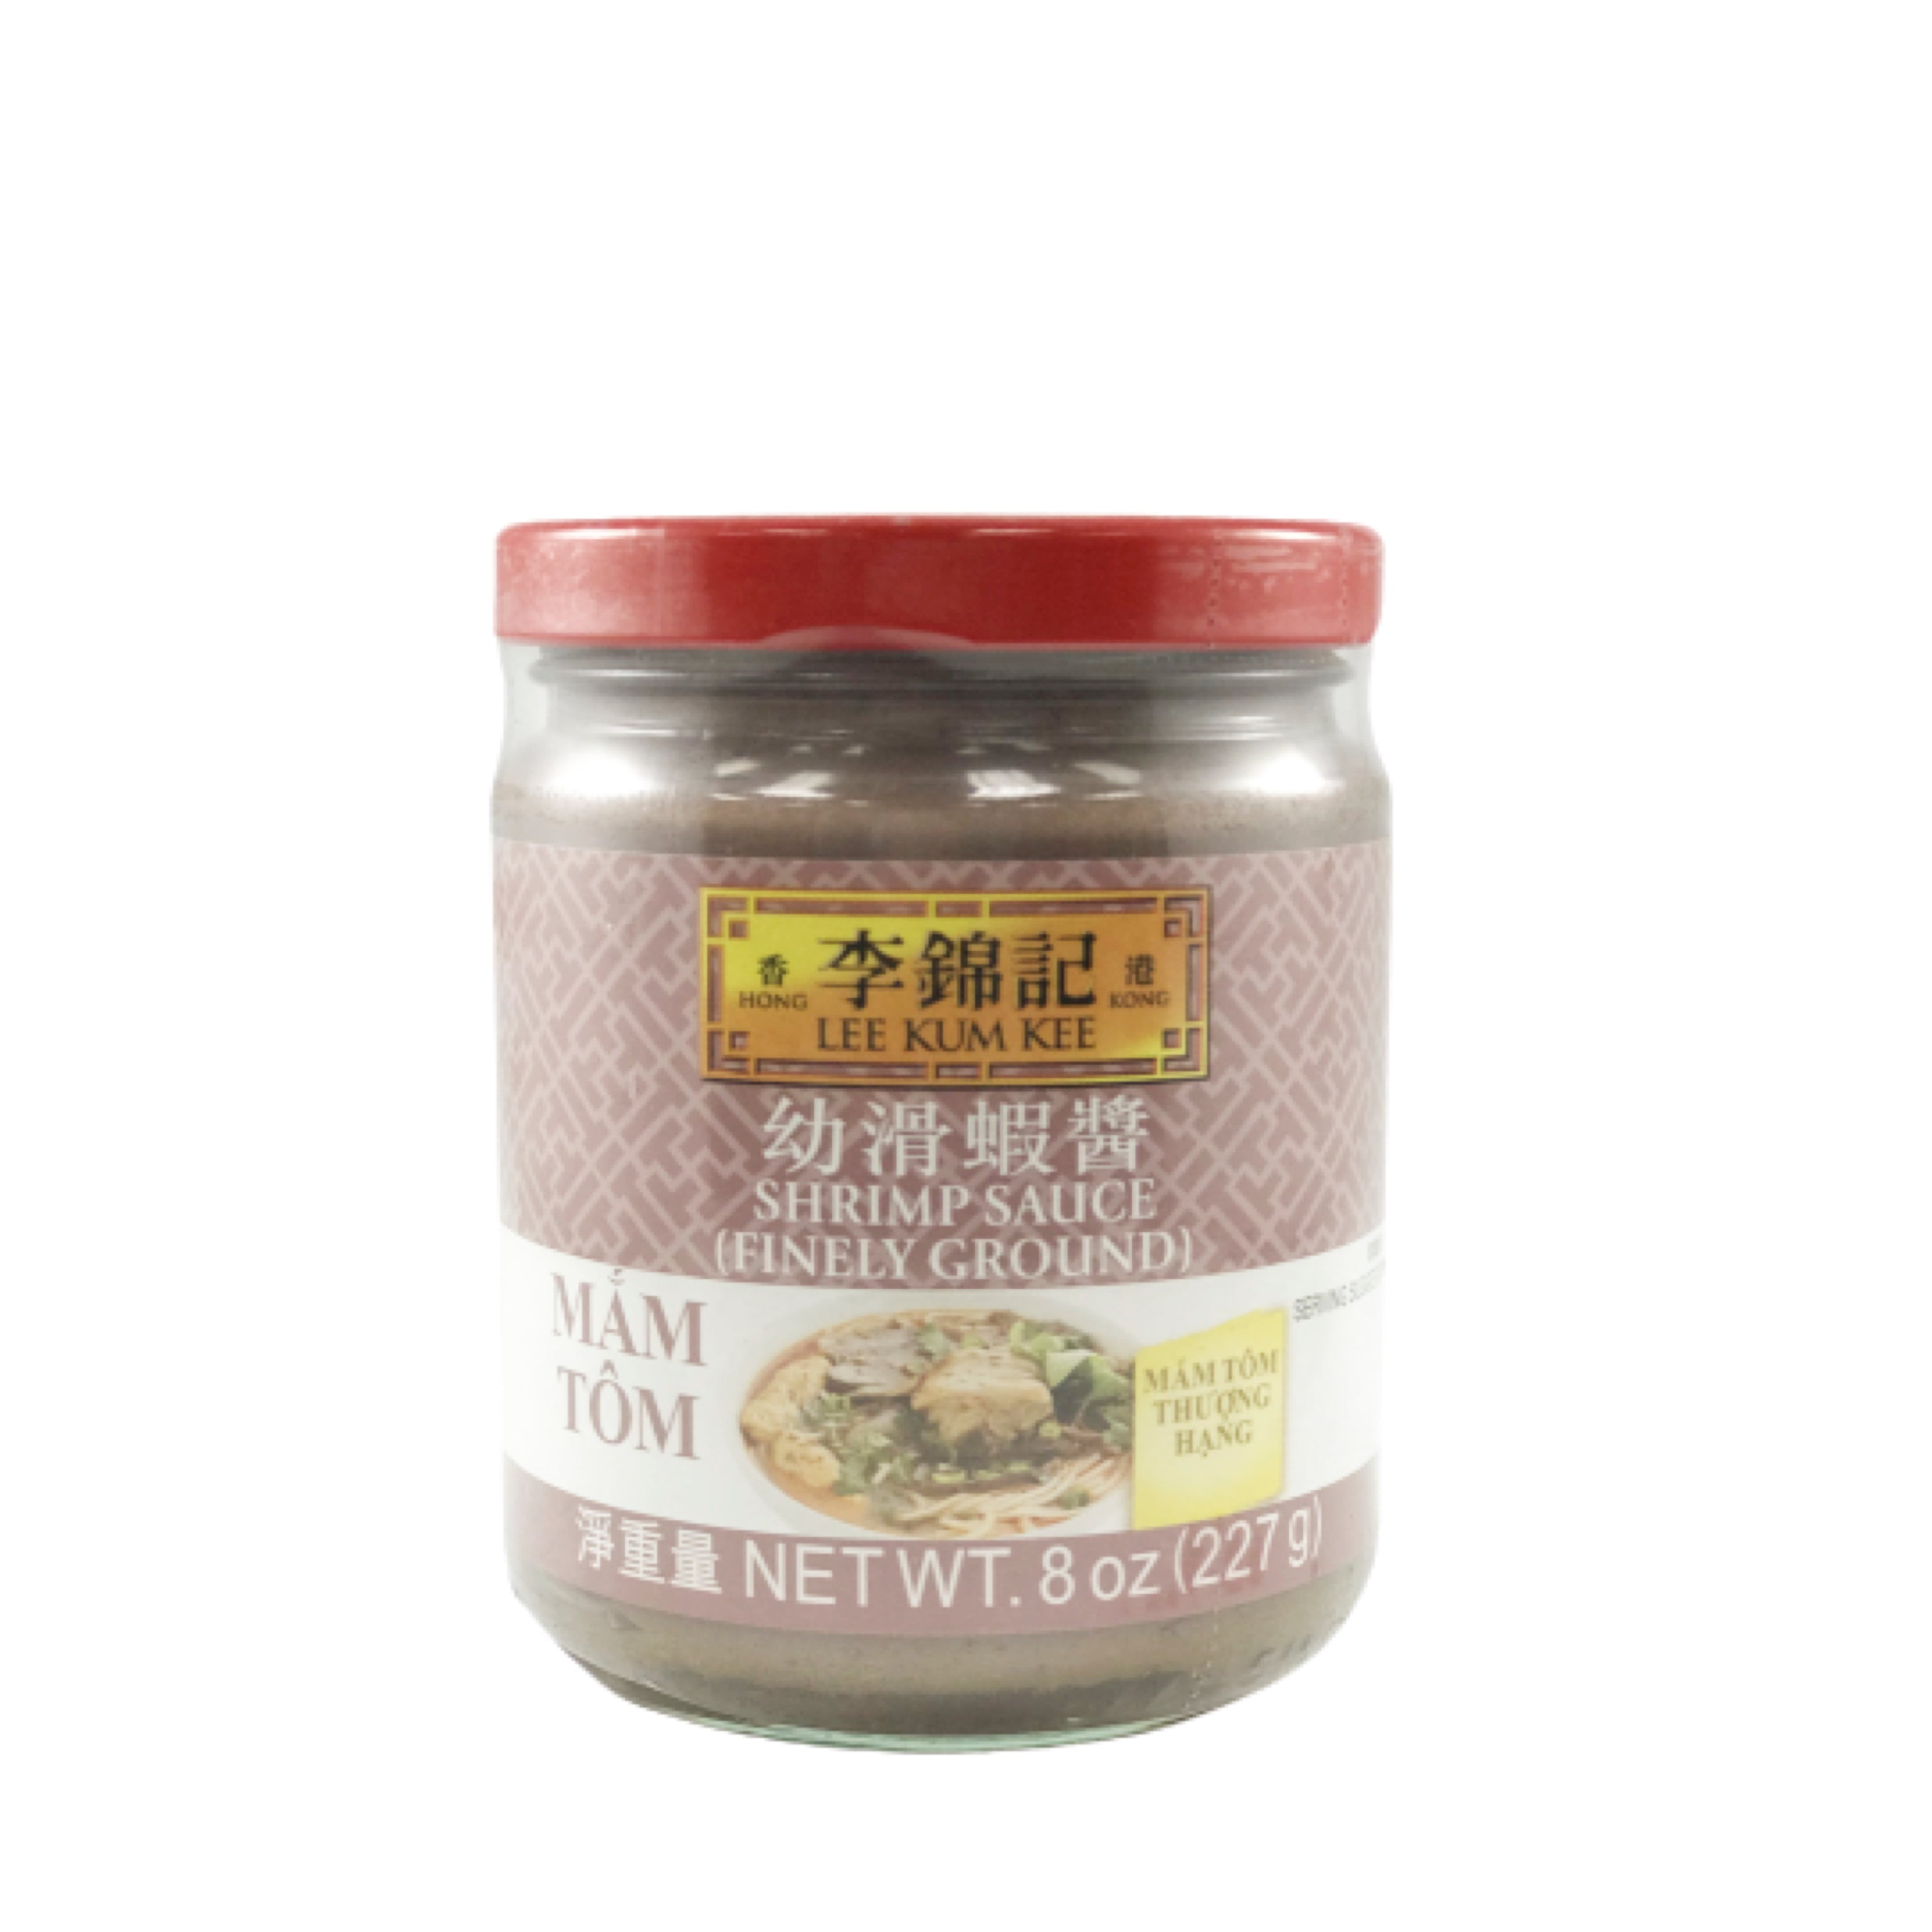 Lee Kum Kee Shrimp Sauce (Finely Ground) 李錦記 幼滑蝦醬 12oz